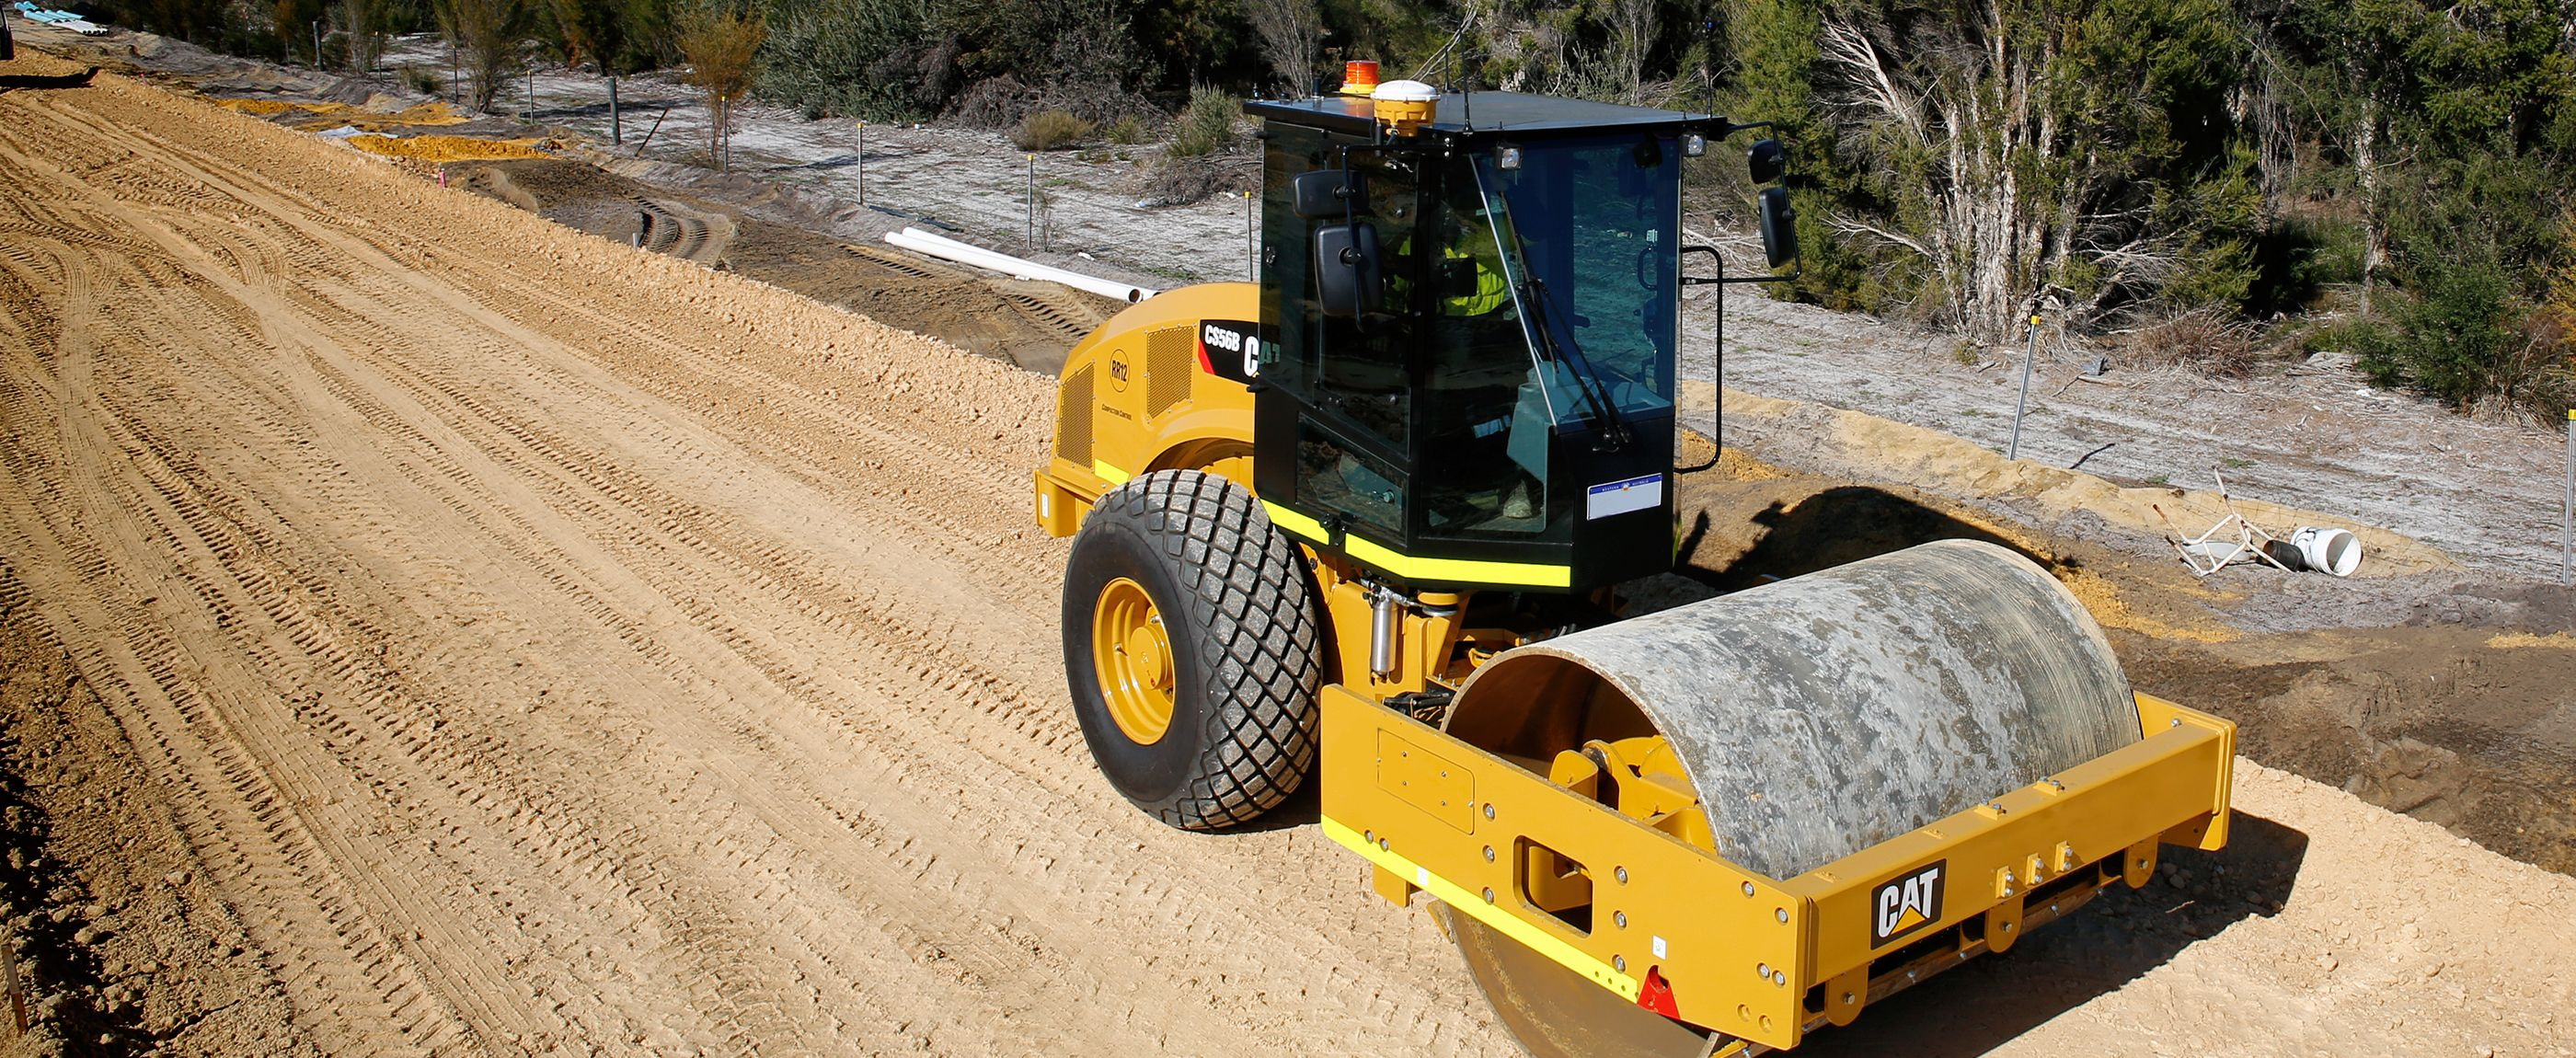 How To Select the Best Compaction Equipment for the Job